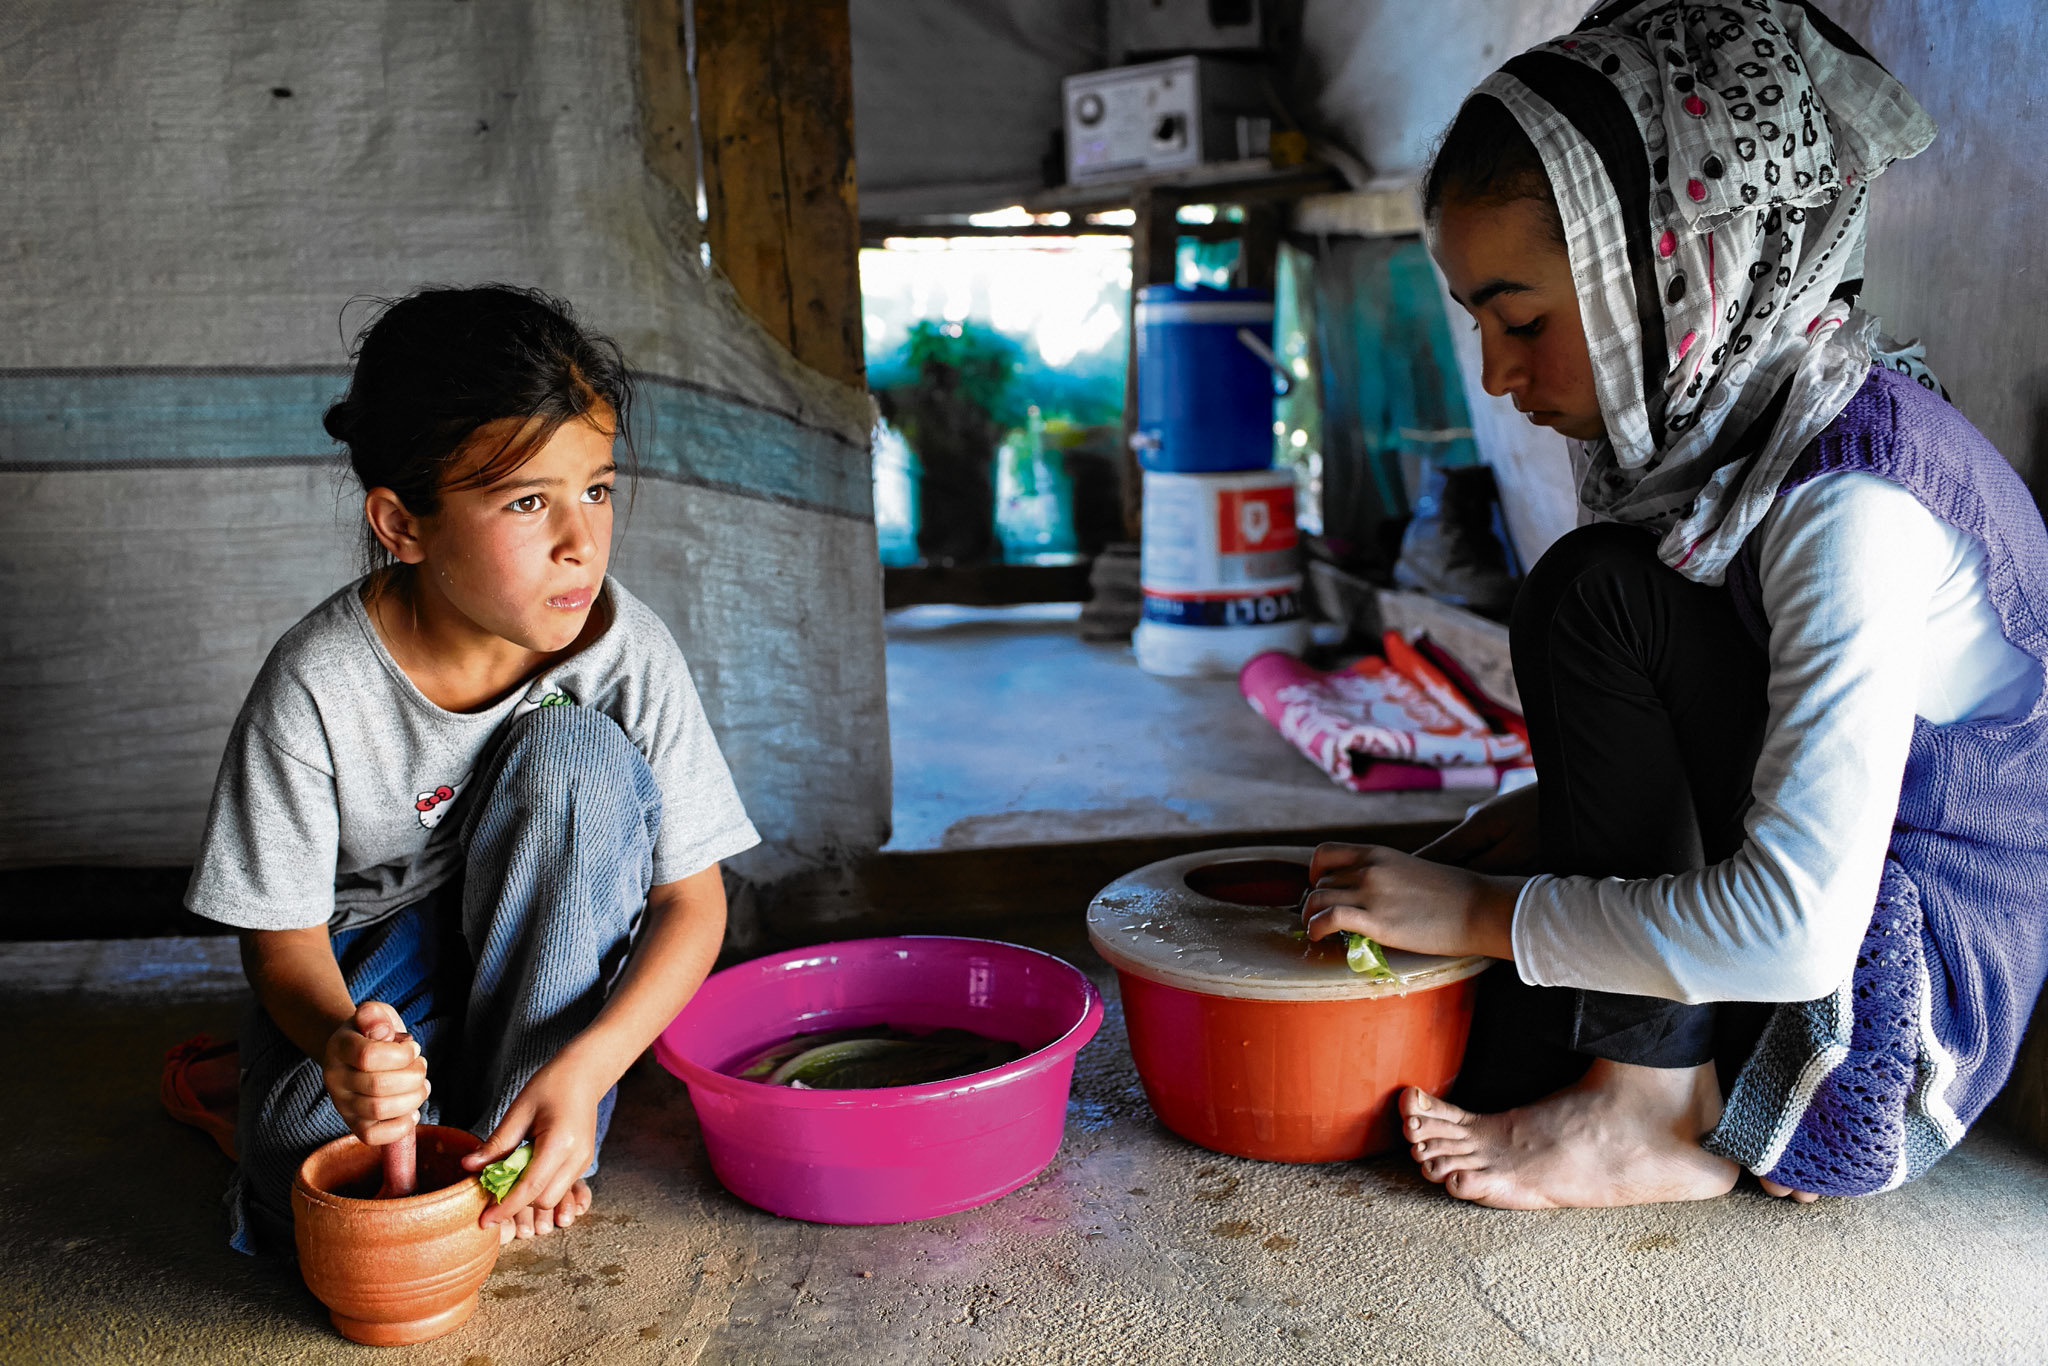 Aya and her family fled from Syria to Lebanon two years ago. Coming to an unfamiliar territory, the family of nine lived in a narrow temporary shelter.© UNHCR / S. Baldwin